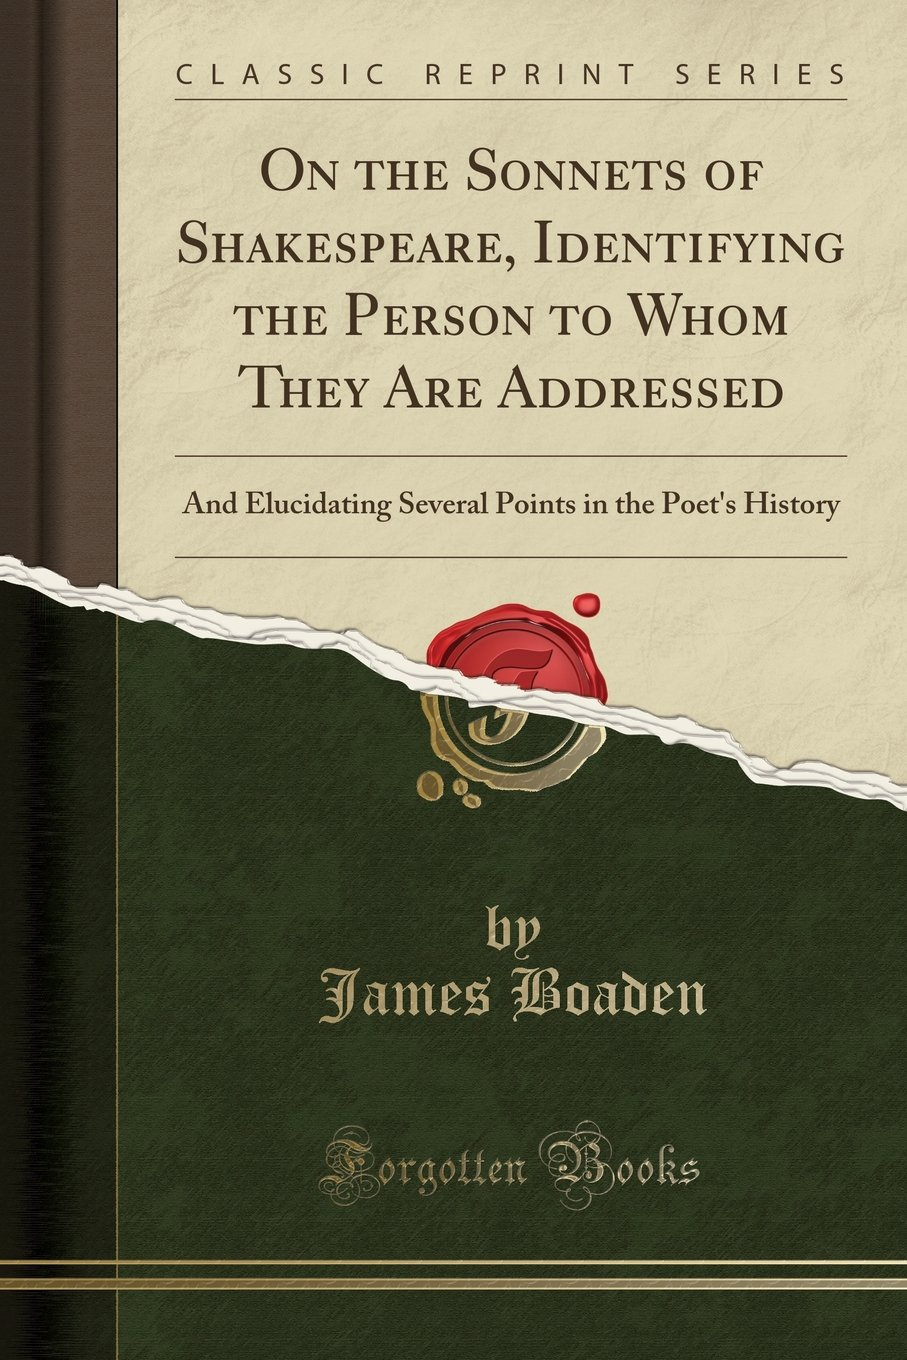 Download On the Sonnets of Shakespeare, Identifying the Person to Whom They Are Addressed: And Elucidating Several Points in the Poet's History (Classic Reprint) PDF